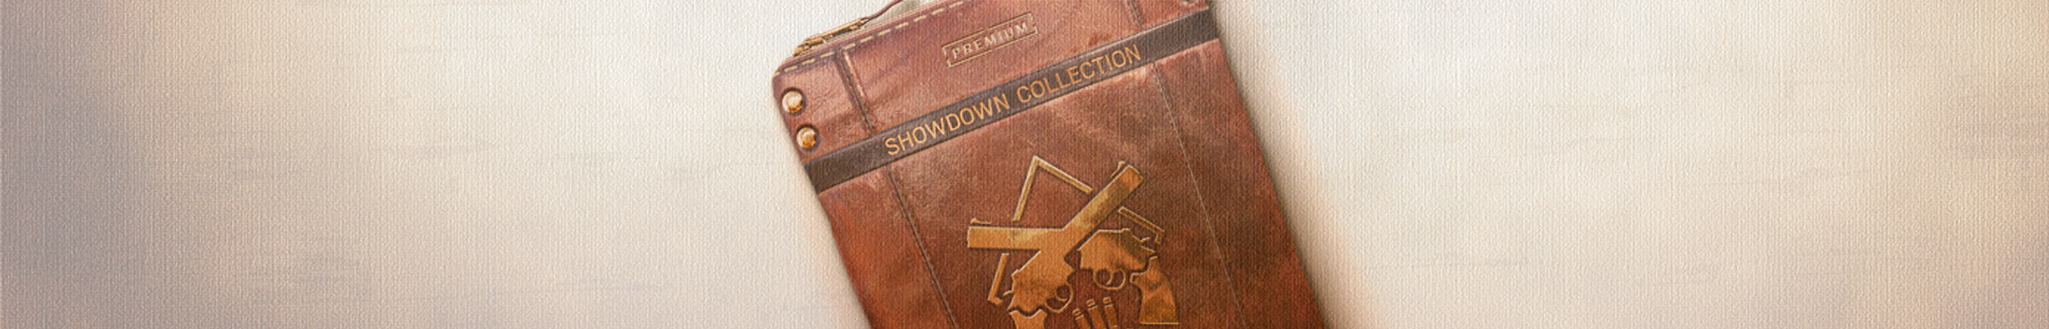 [2019-07-02] Showdown Throwdown 2